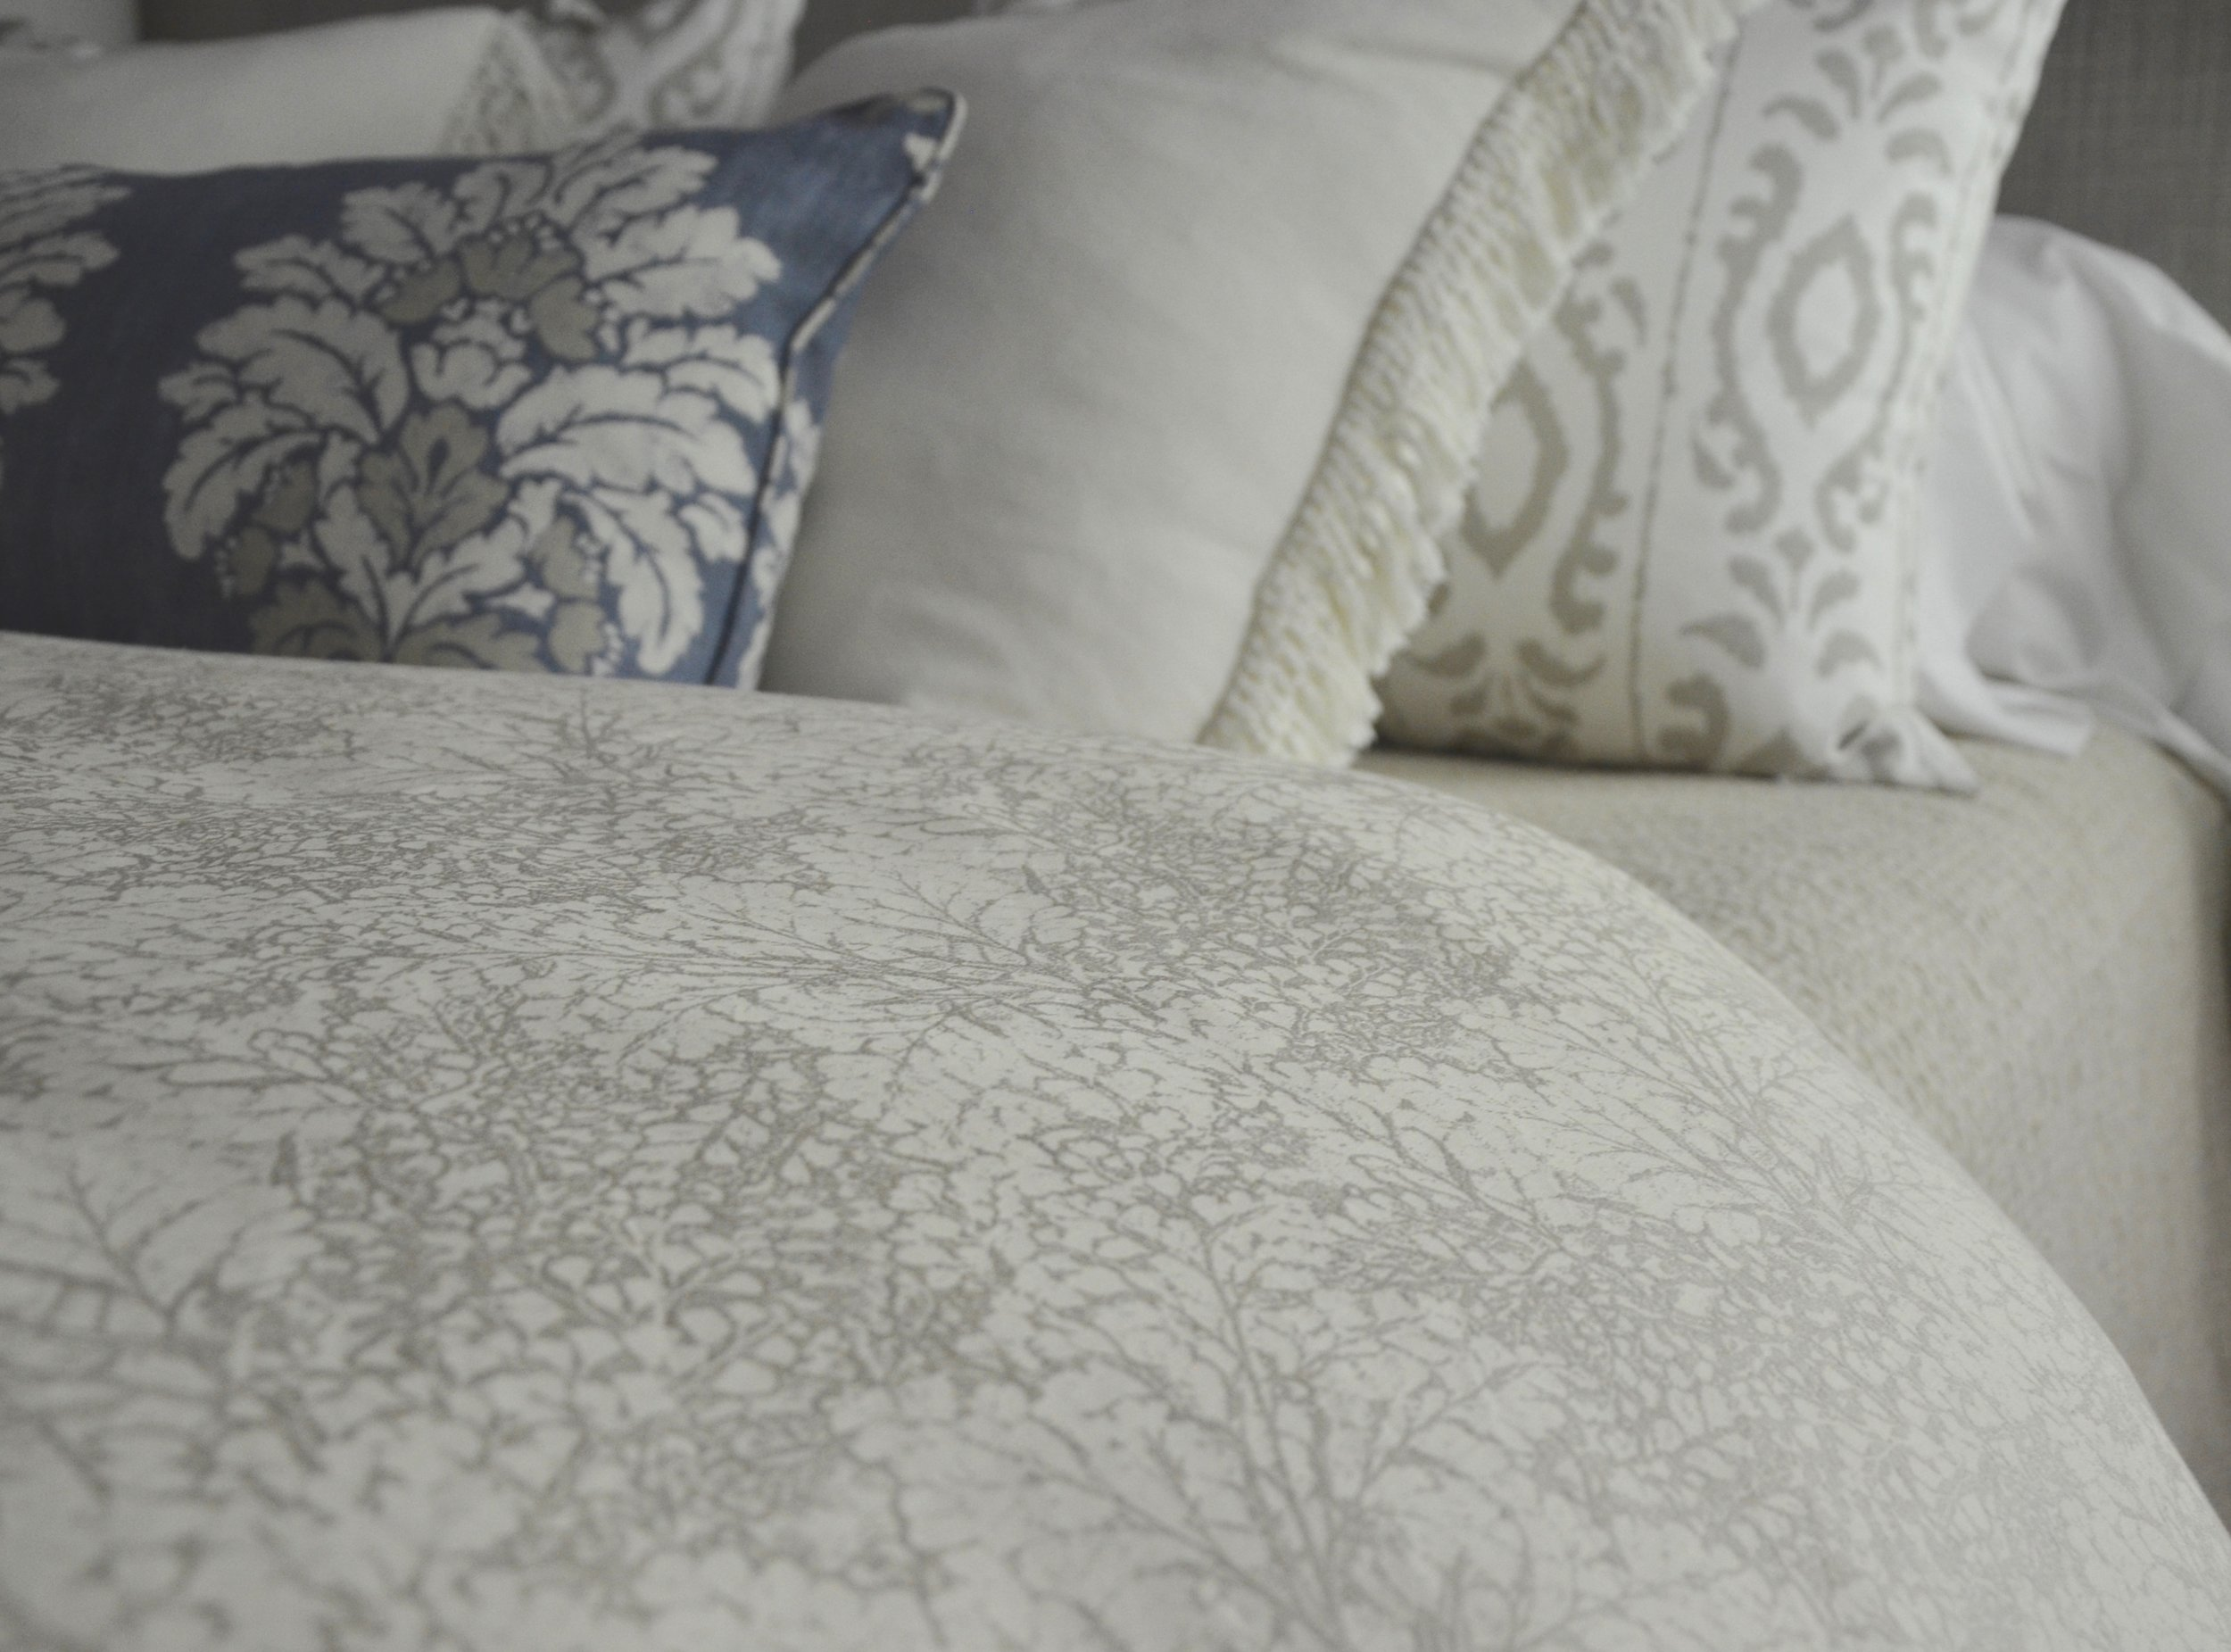 Duevet cover and bedding detail from our latest Turndown Service in McLean, VA, featuring SDH bedding. Turndown Service and Design by Valerianne of DC.